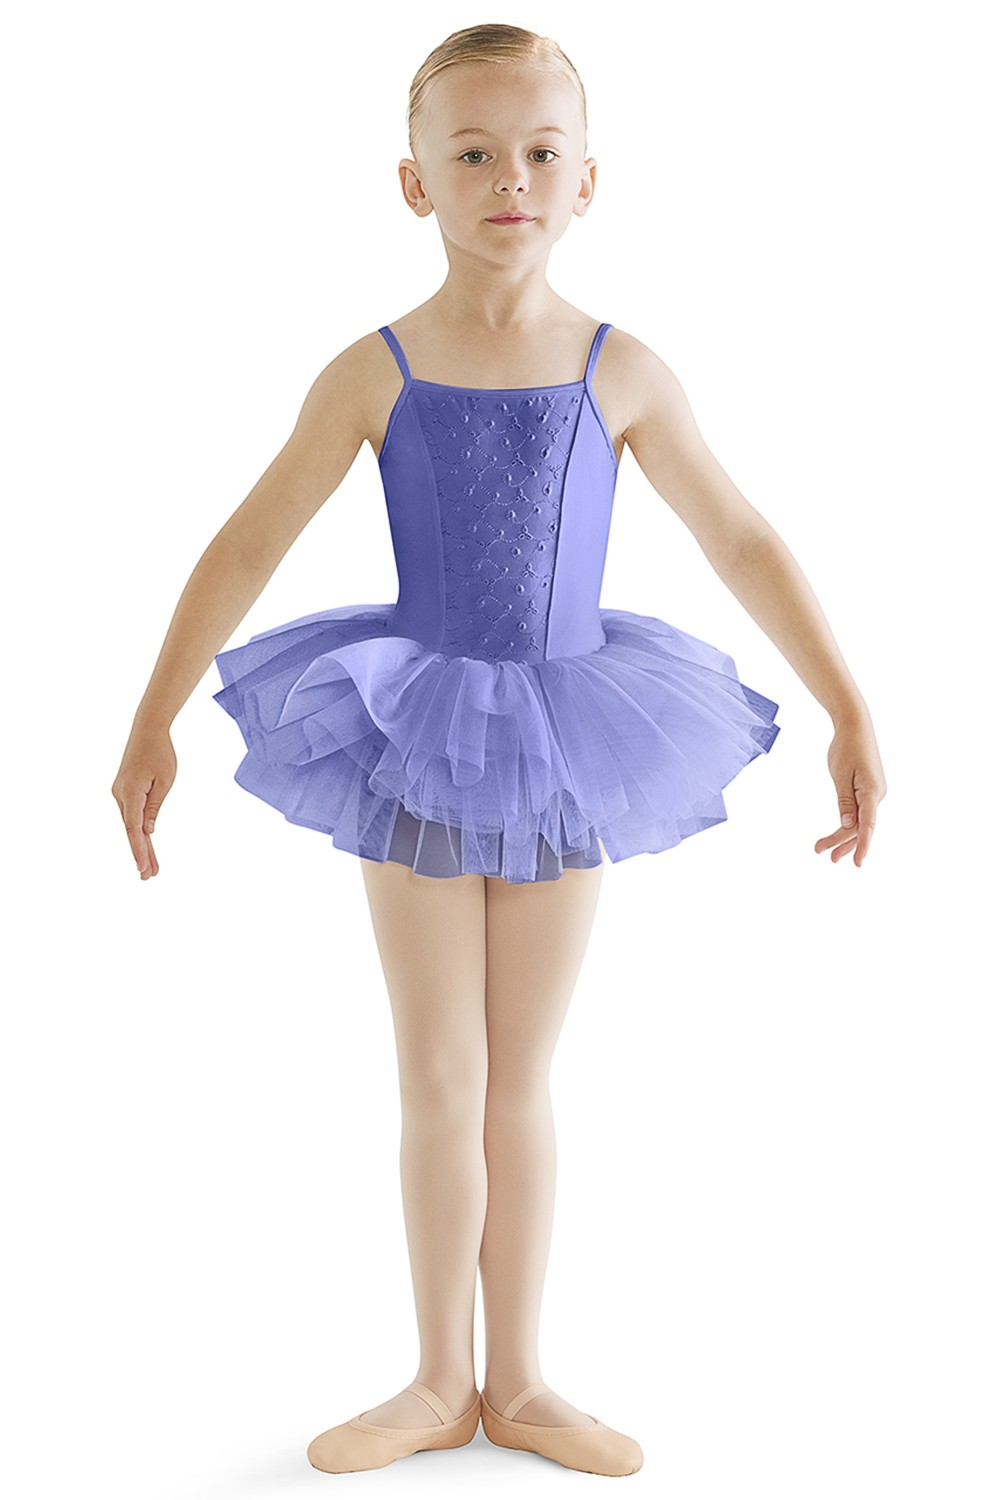 Beaches Girls Skirted Leotards